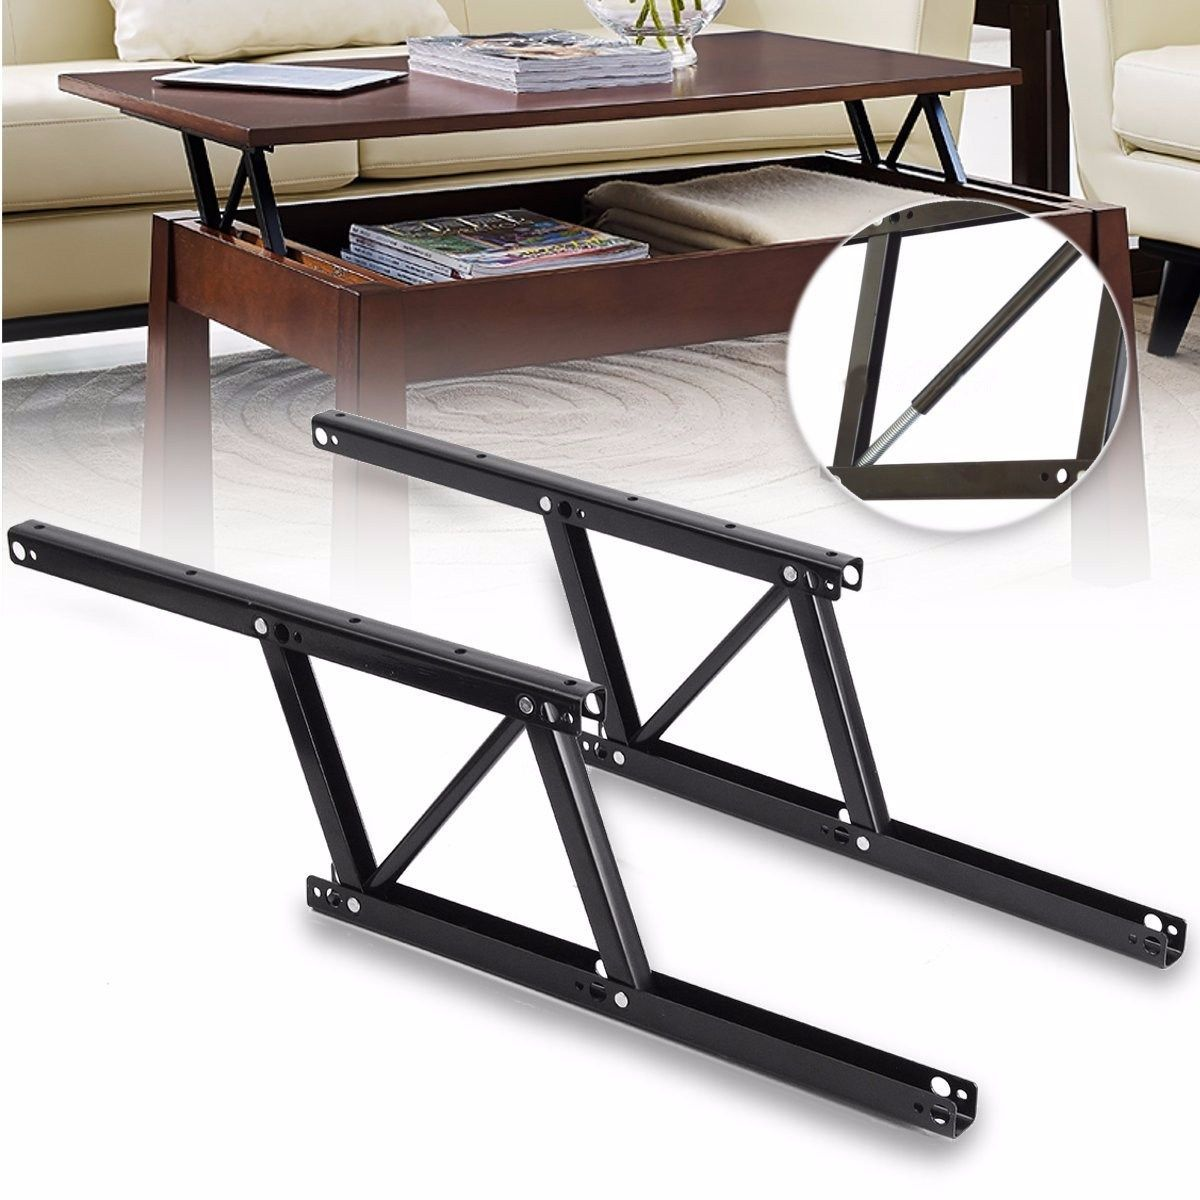 - 40+ Creative DIY Coffee Table Ideas You Can Build Yourself (mit